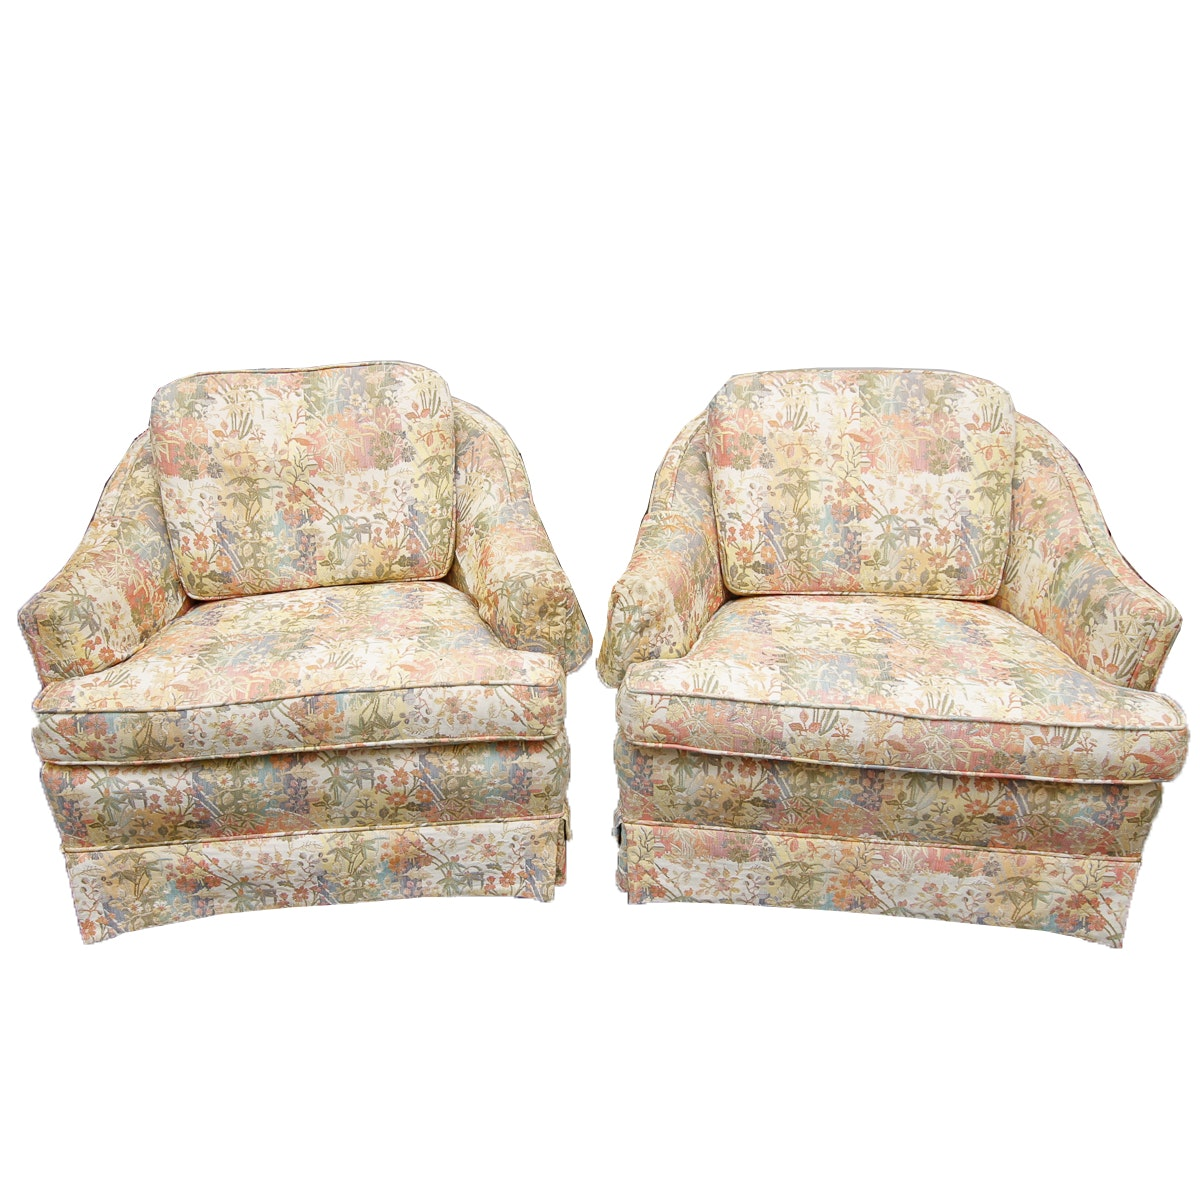 Pair of Vintage Upholstered Accent Chairs